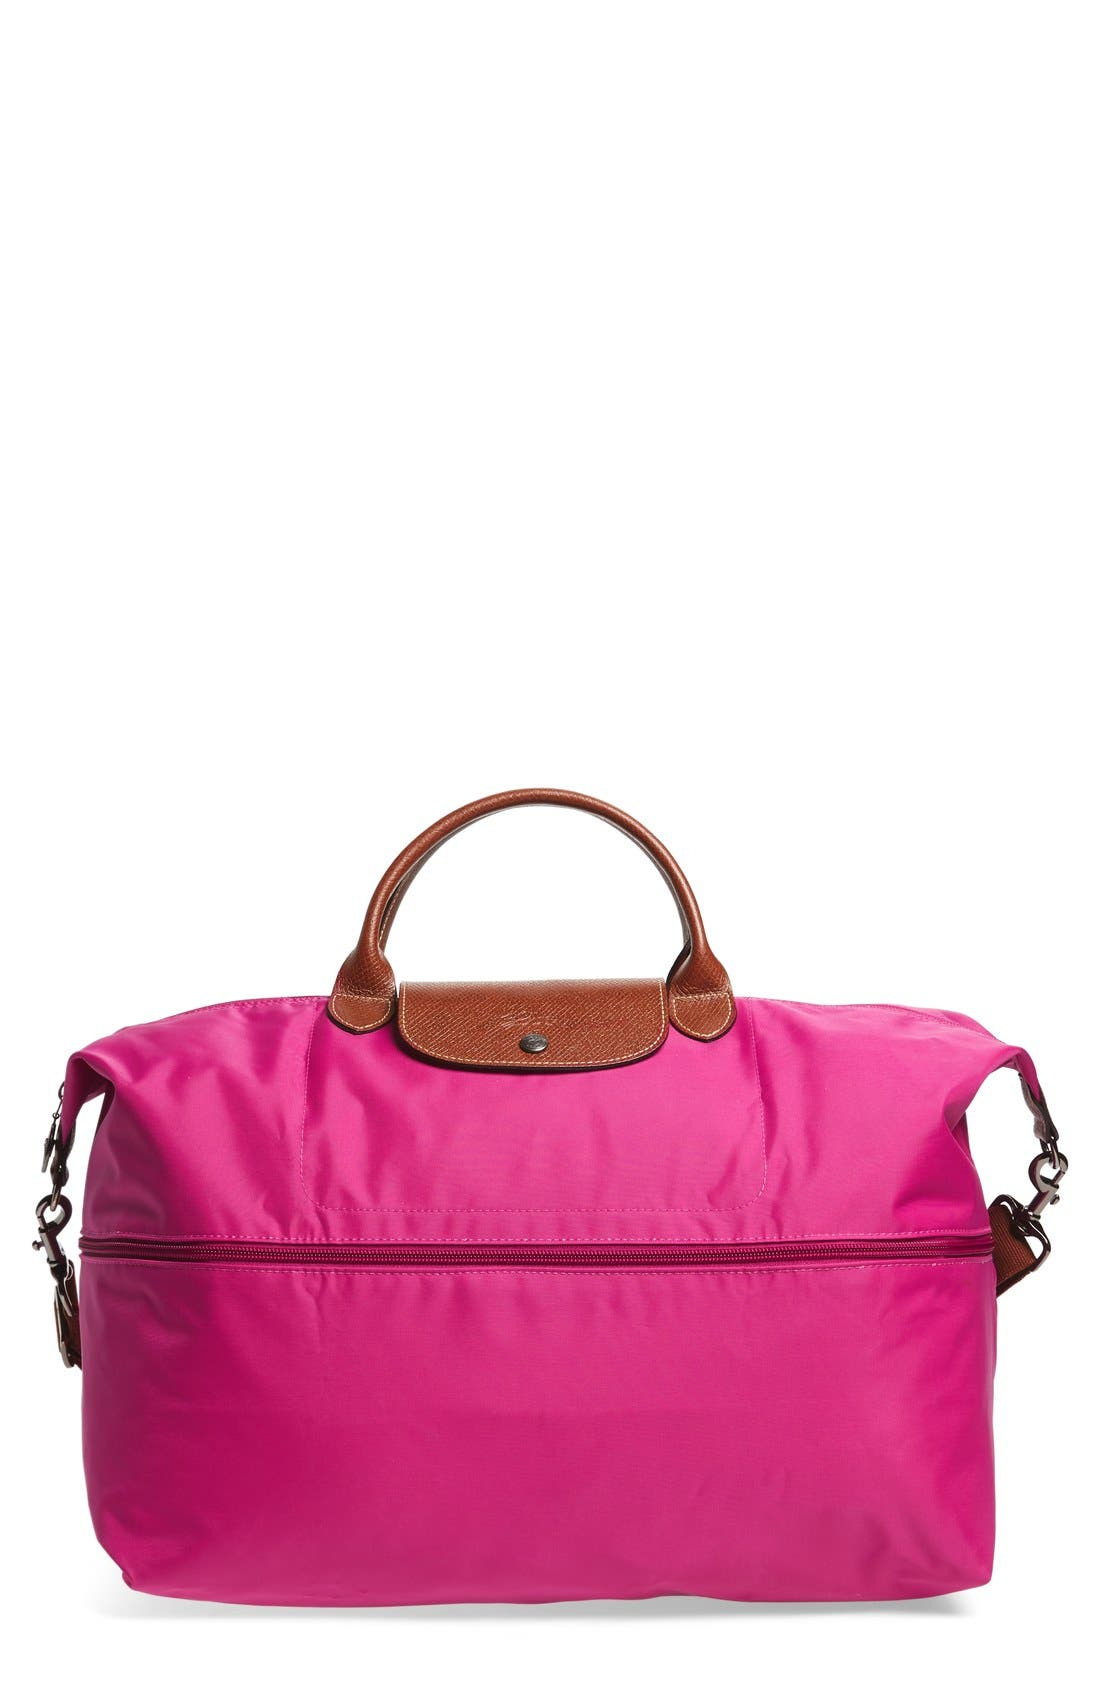 Luggage & Travel Bags | Nordstrom